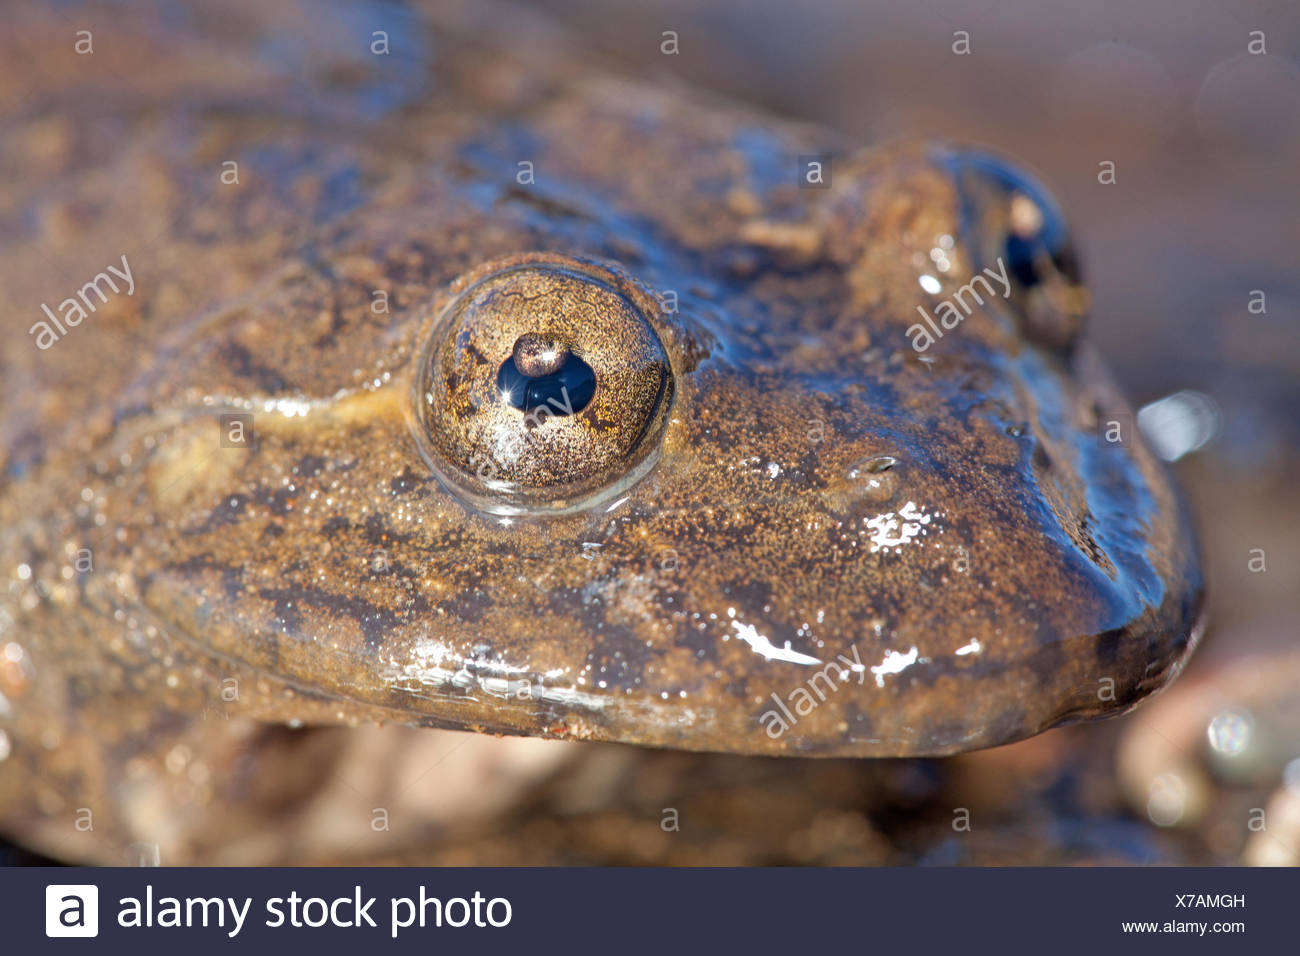 Photo of a Maluti river frog, it has an umbraculum in its eye that protects the eye from UV radiation and is an adaptation for living on high altitudes - Stock Image